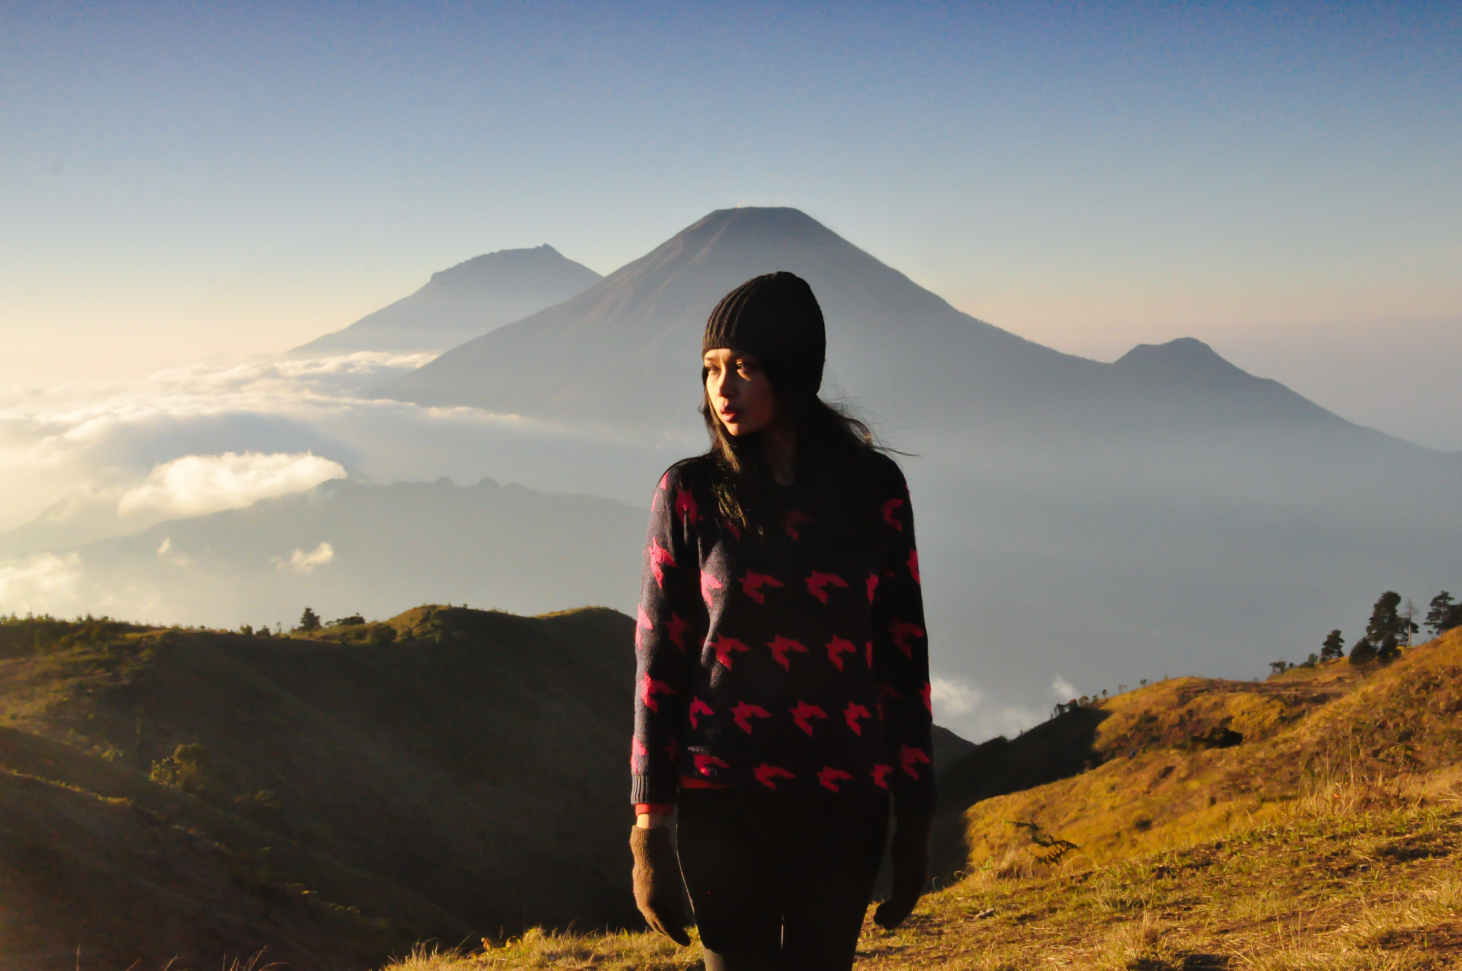 Prau Mountain, 2565 mdpl